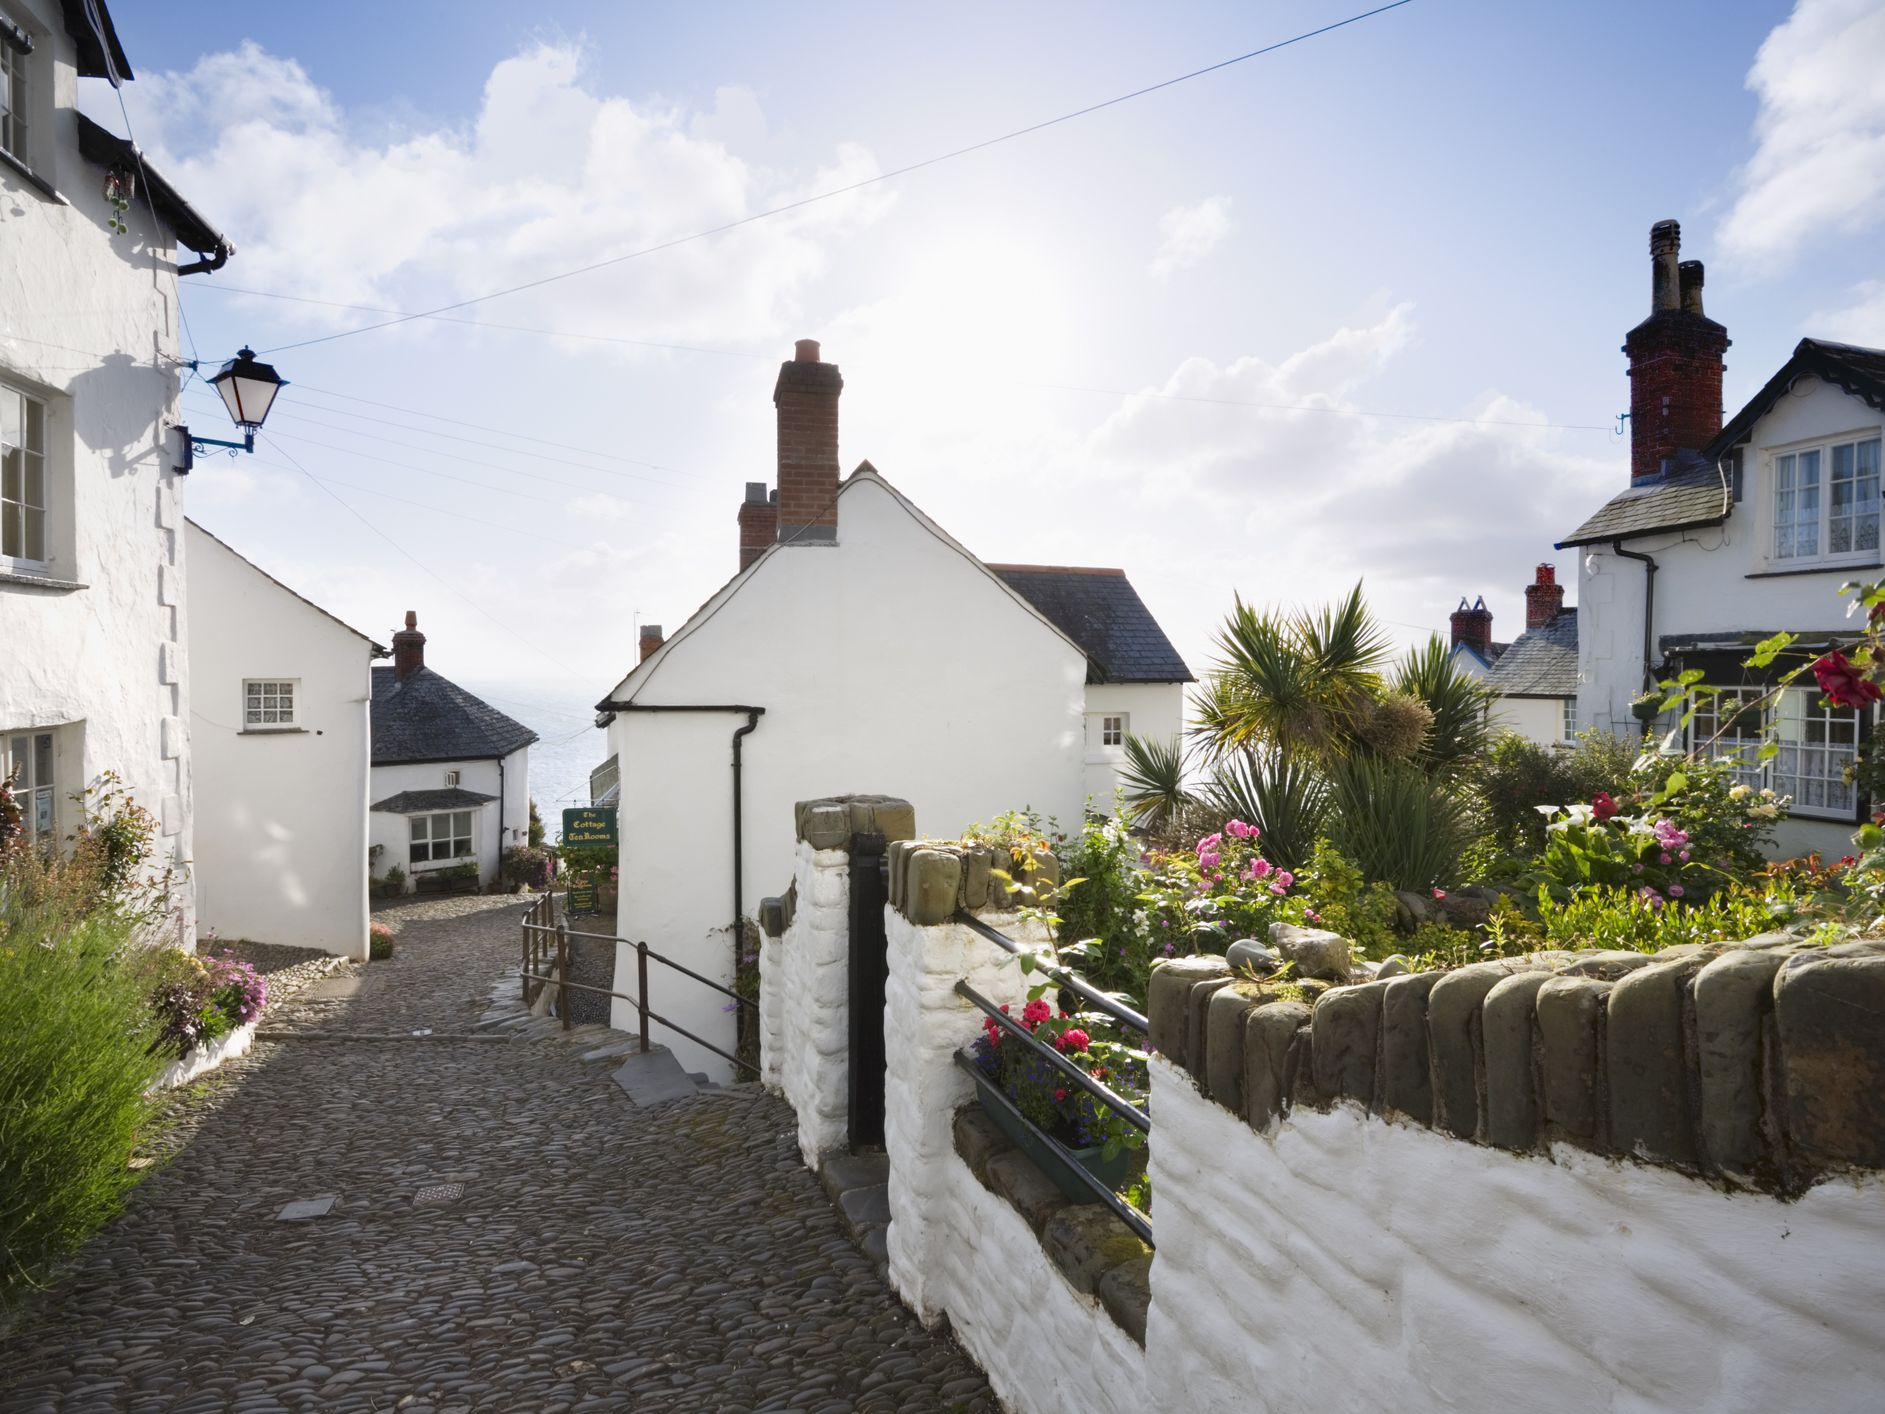 The Prettiest Small Towns to Visit in England